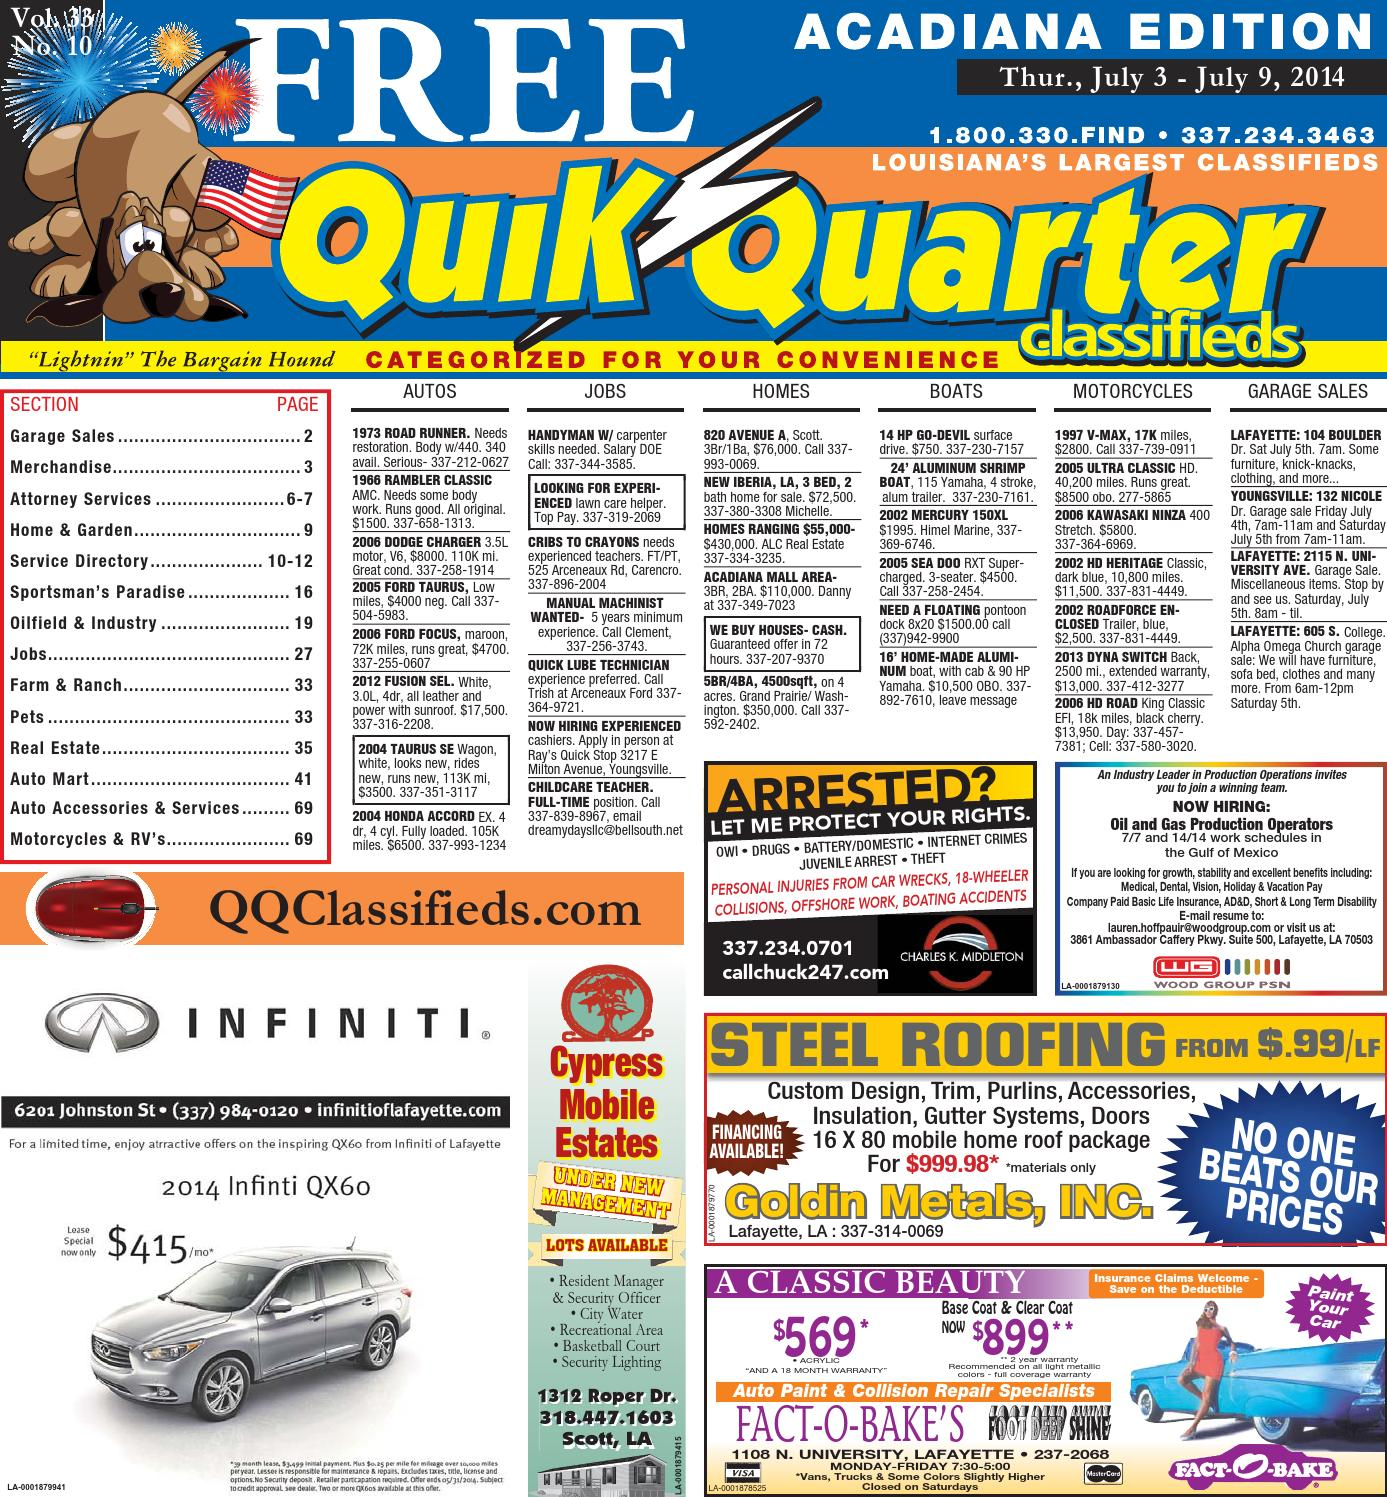 QQAcadiana-07.03.2014 by Part of the USA TODAY NETWORK - issuu bb8470fd4fea